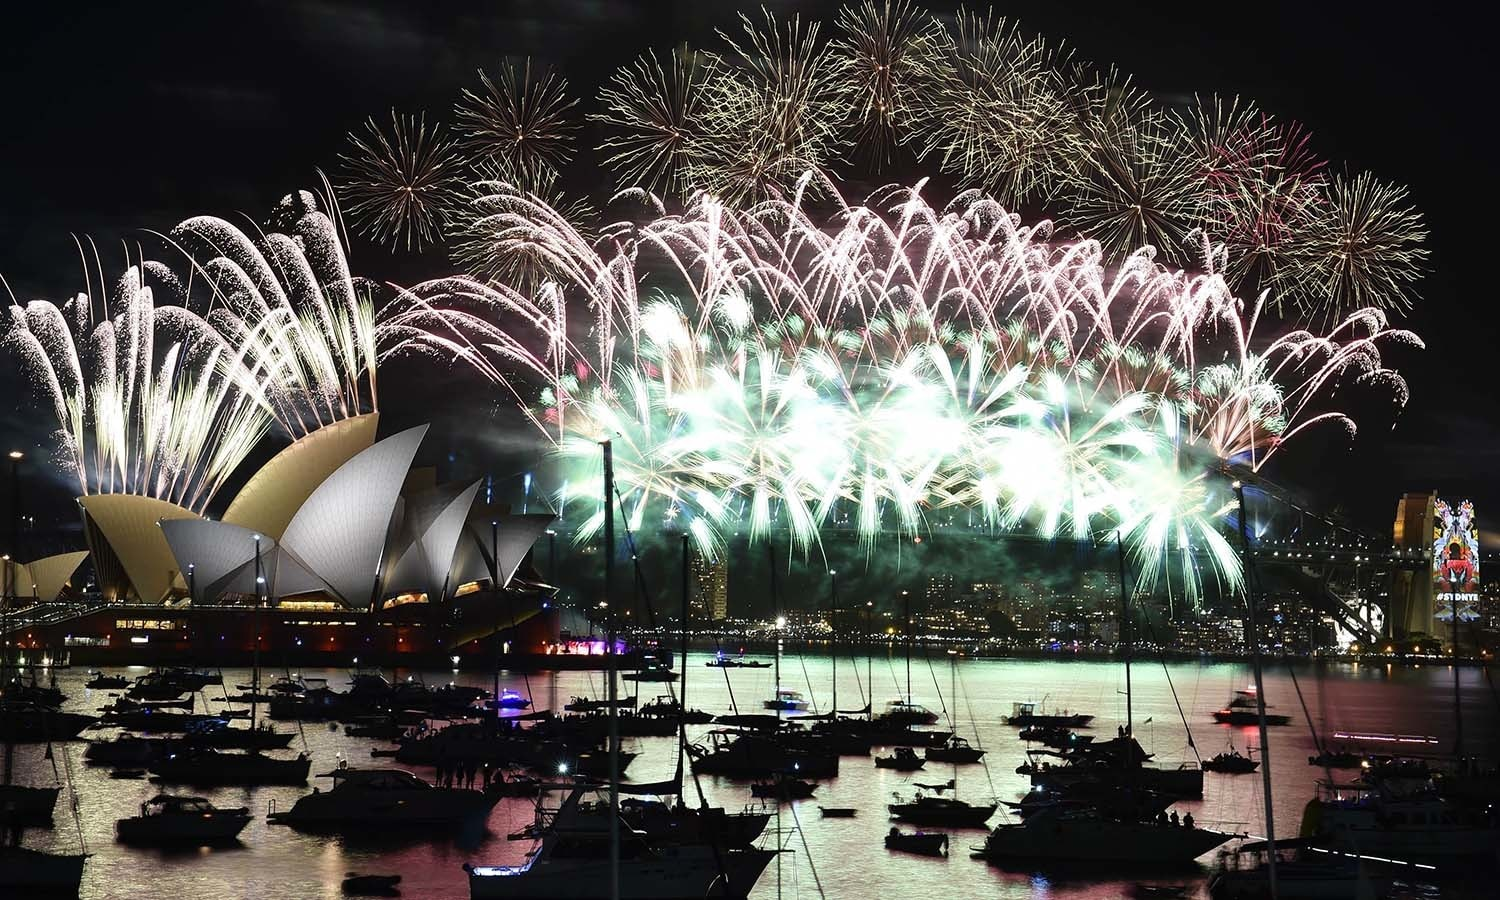 Fireworks light up the sky over Sydney's Opera House (L) and Harbour Bridge during New Year celebrations in Sydney on January 1, 2016.  AFP PHOTO / Saeed KHAN